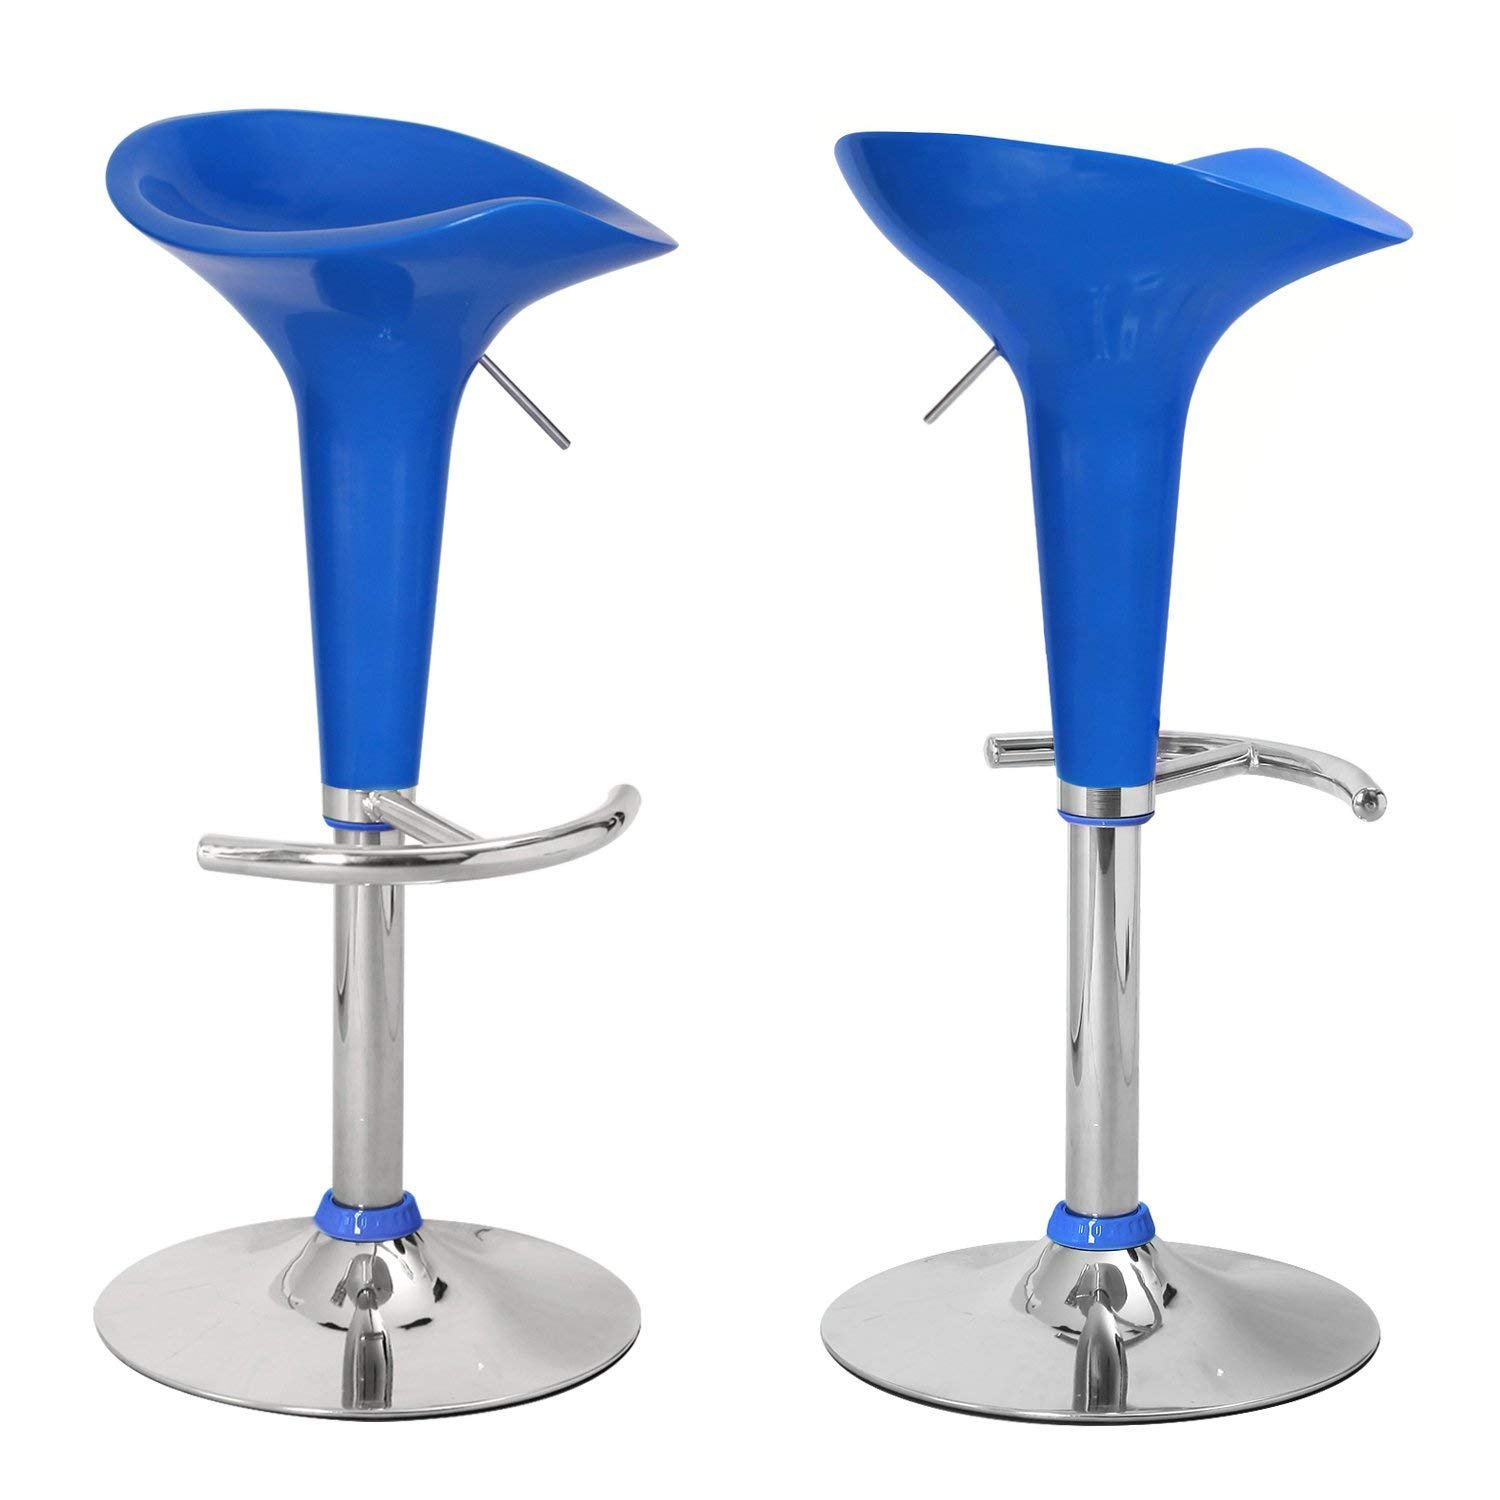 Superb Asense 24 31 Height Backless Modern Swivel Adjustable Bar Stools Chairs Blue Set Of Two Ibusinesslaw Wood Chair Design Ideas Ibusinesslaworg